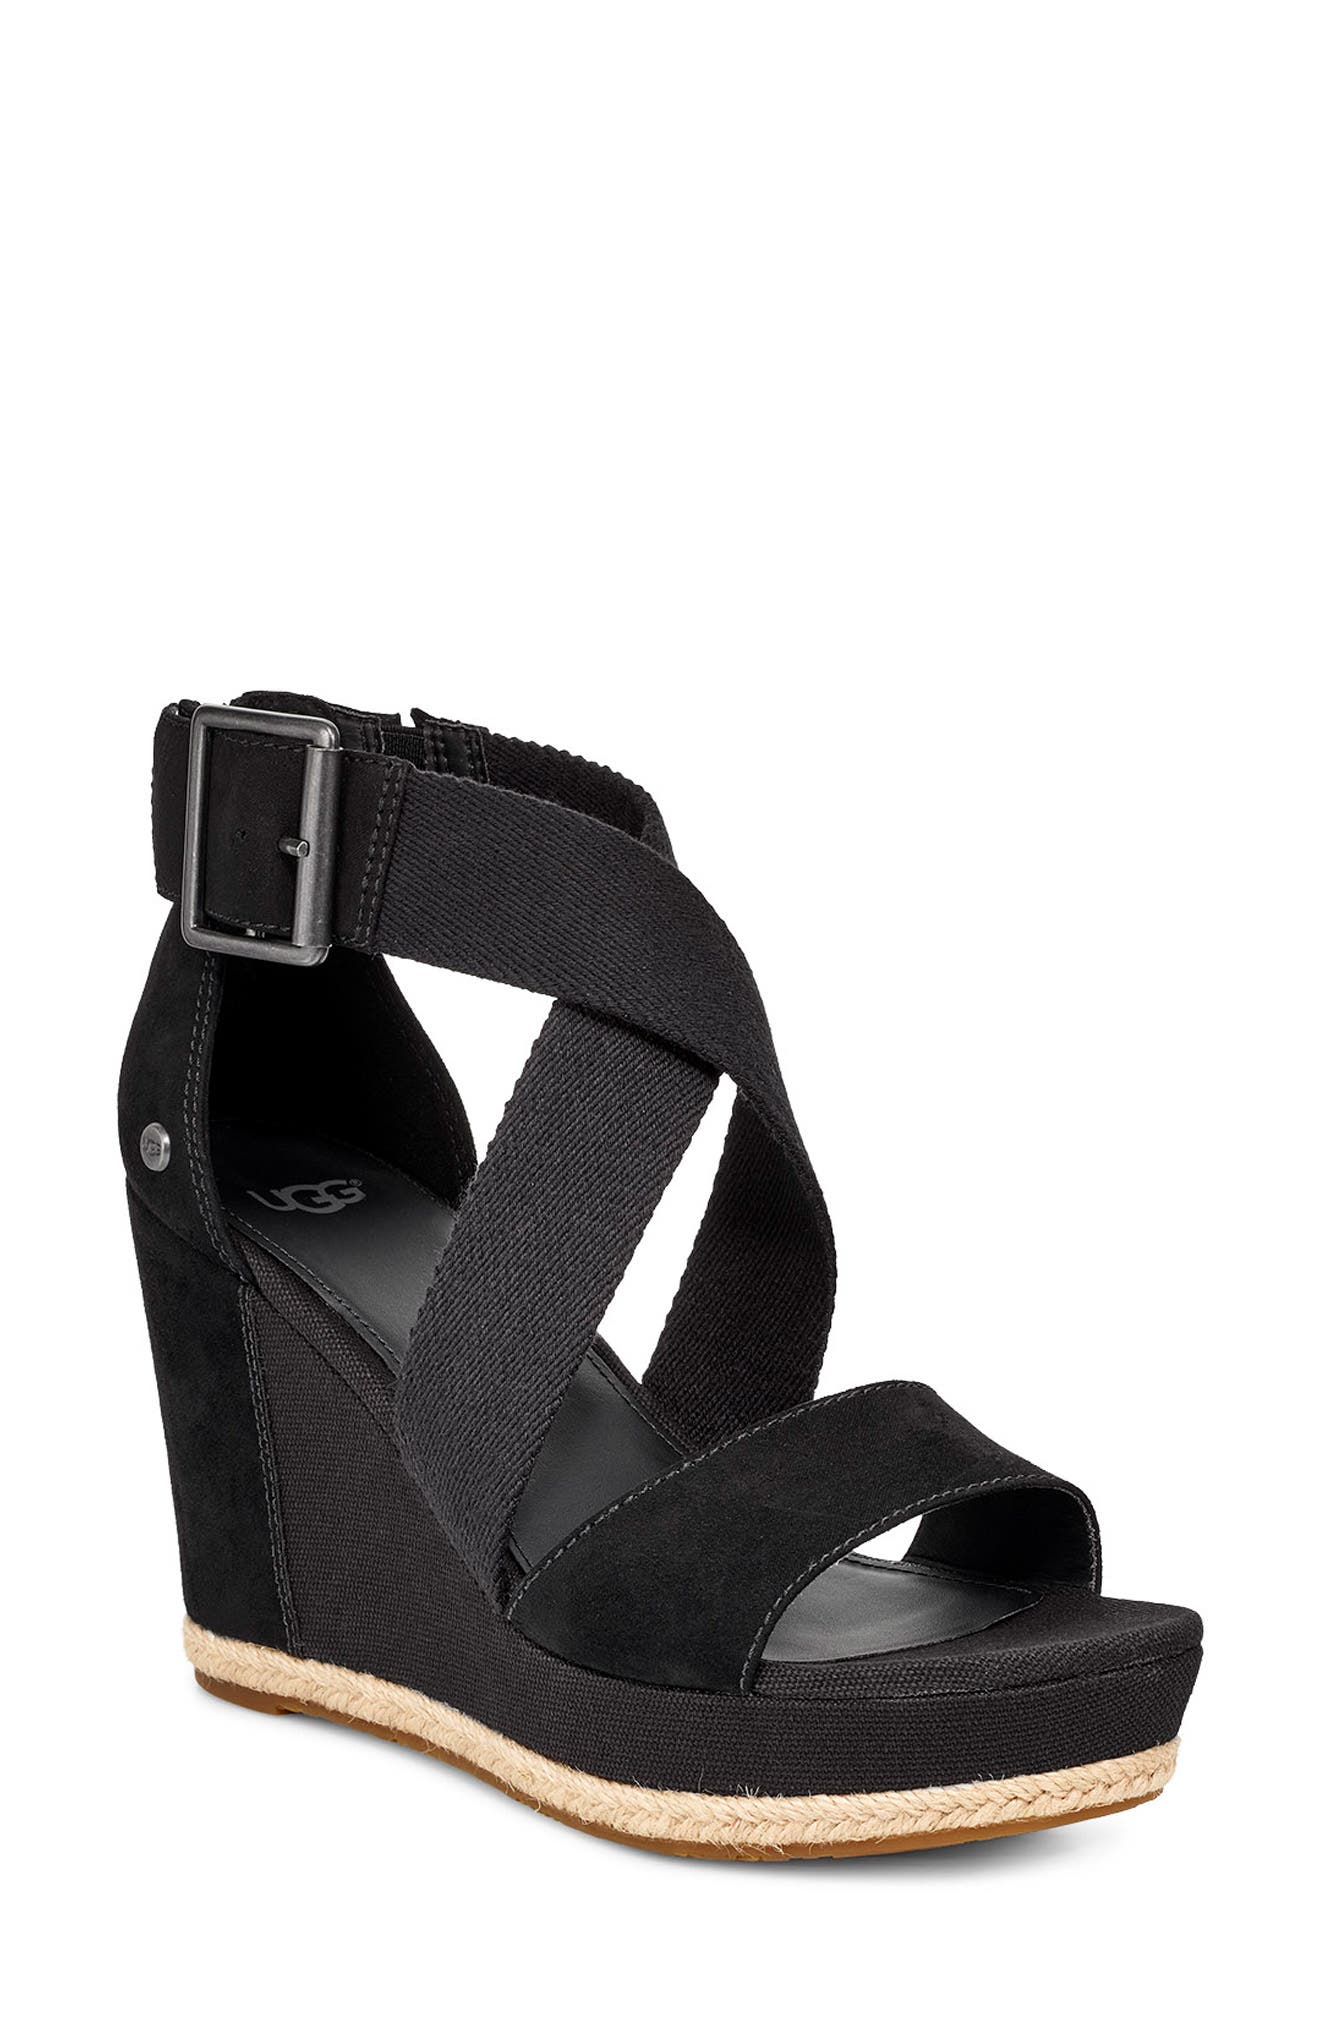 b4cbfb8c7a5 Women s Wedges UGG Boots   More